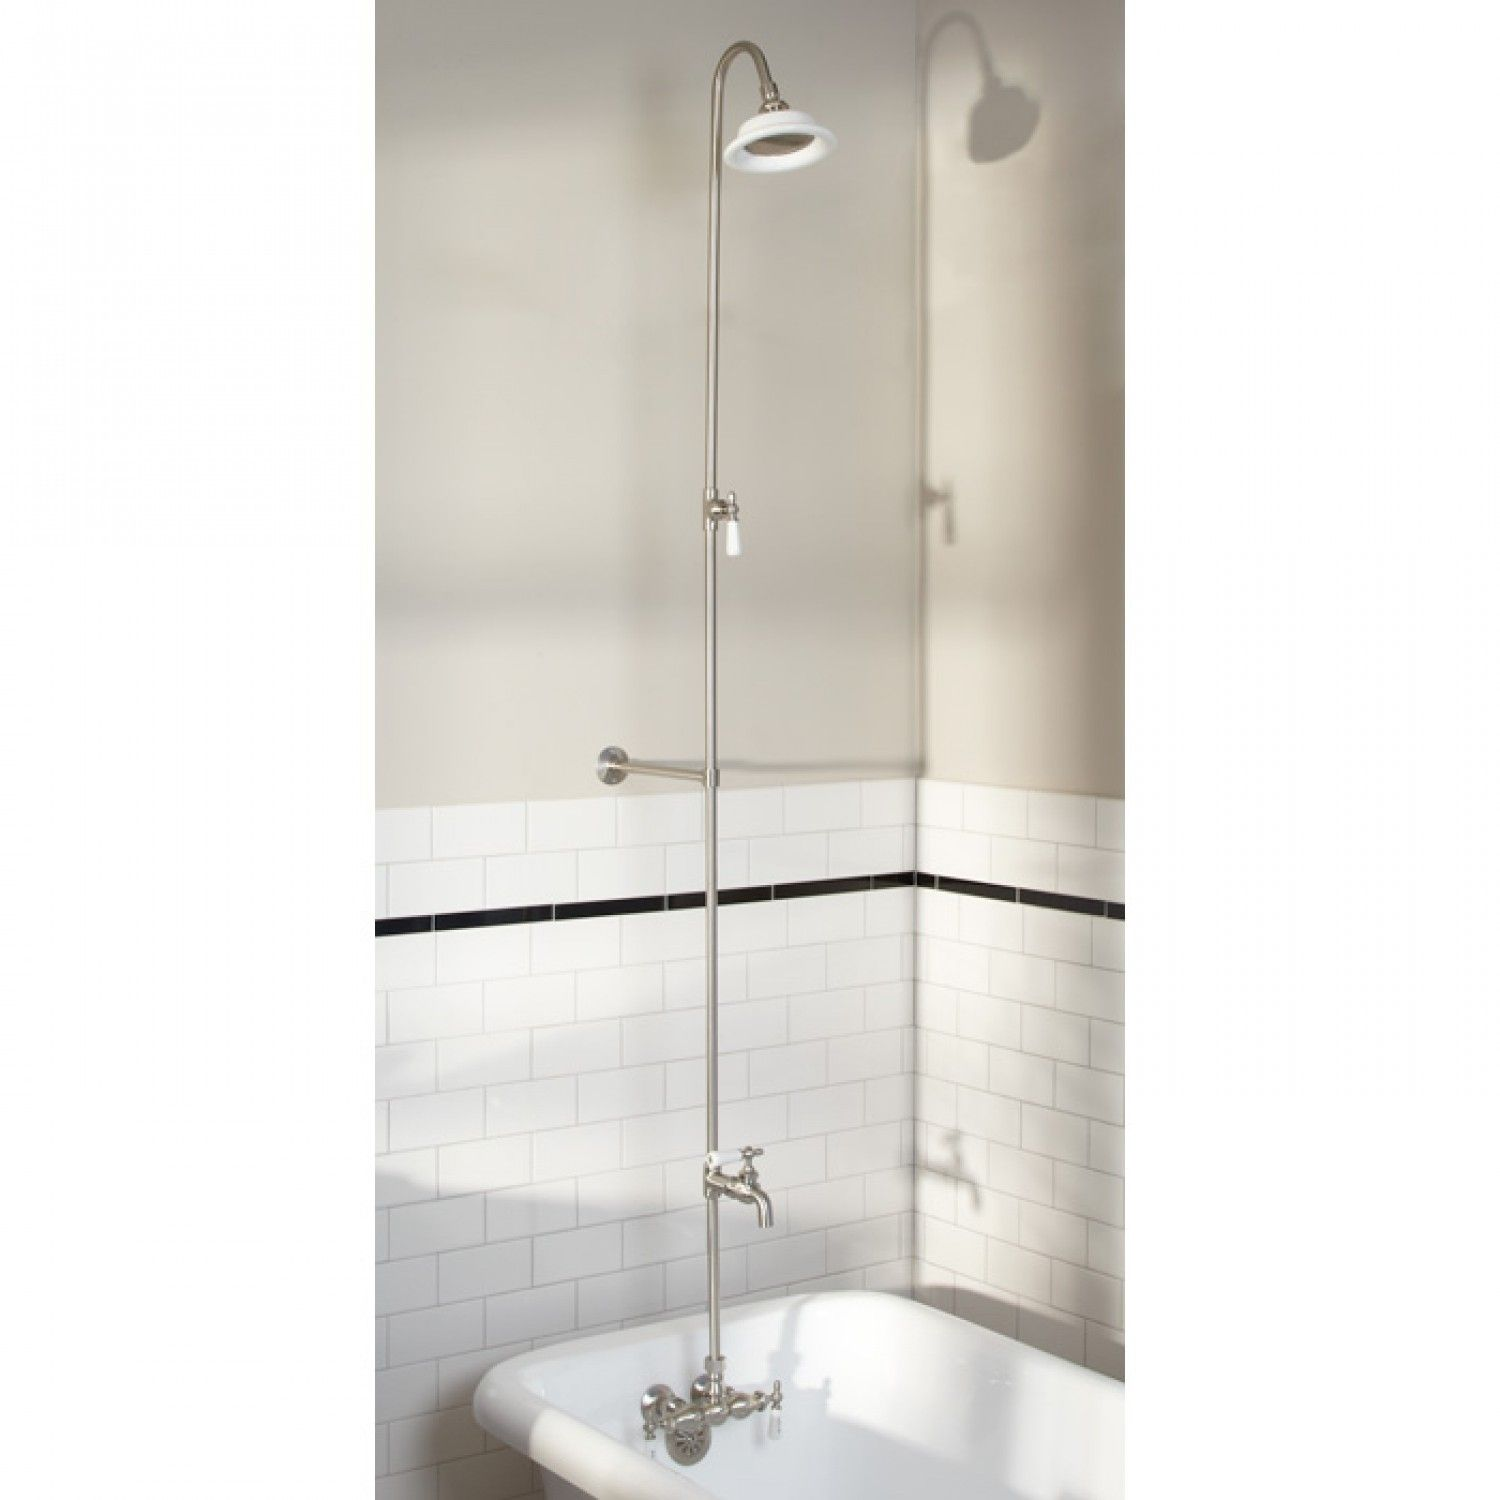 shower setup for clawfoot tub. Wall Shower Set With Exposed Pipe Riser And Tub Filler  Available In Polished Brass 325 Set